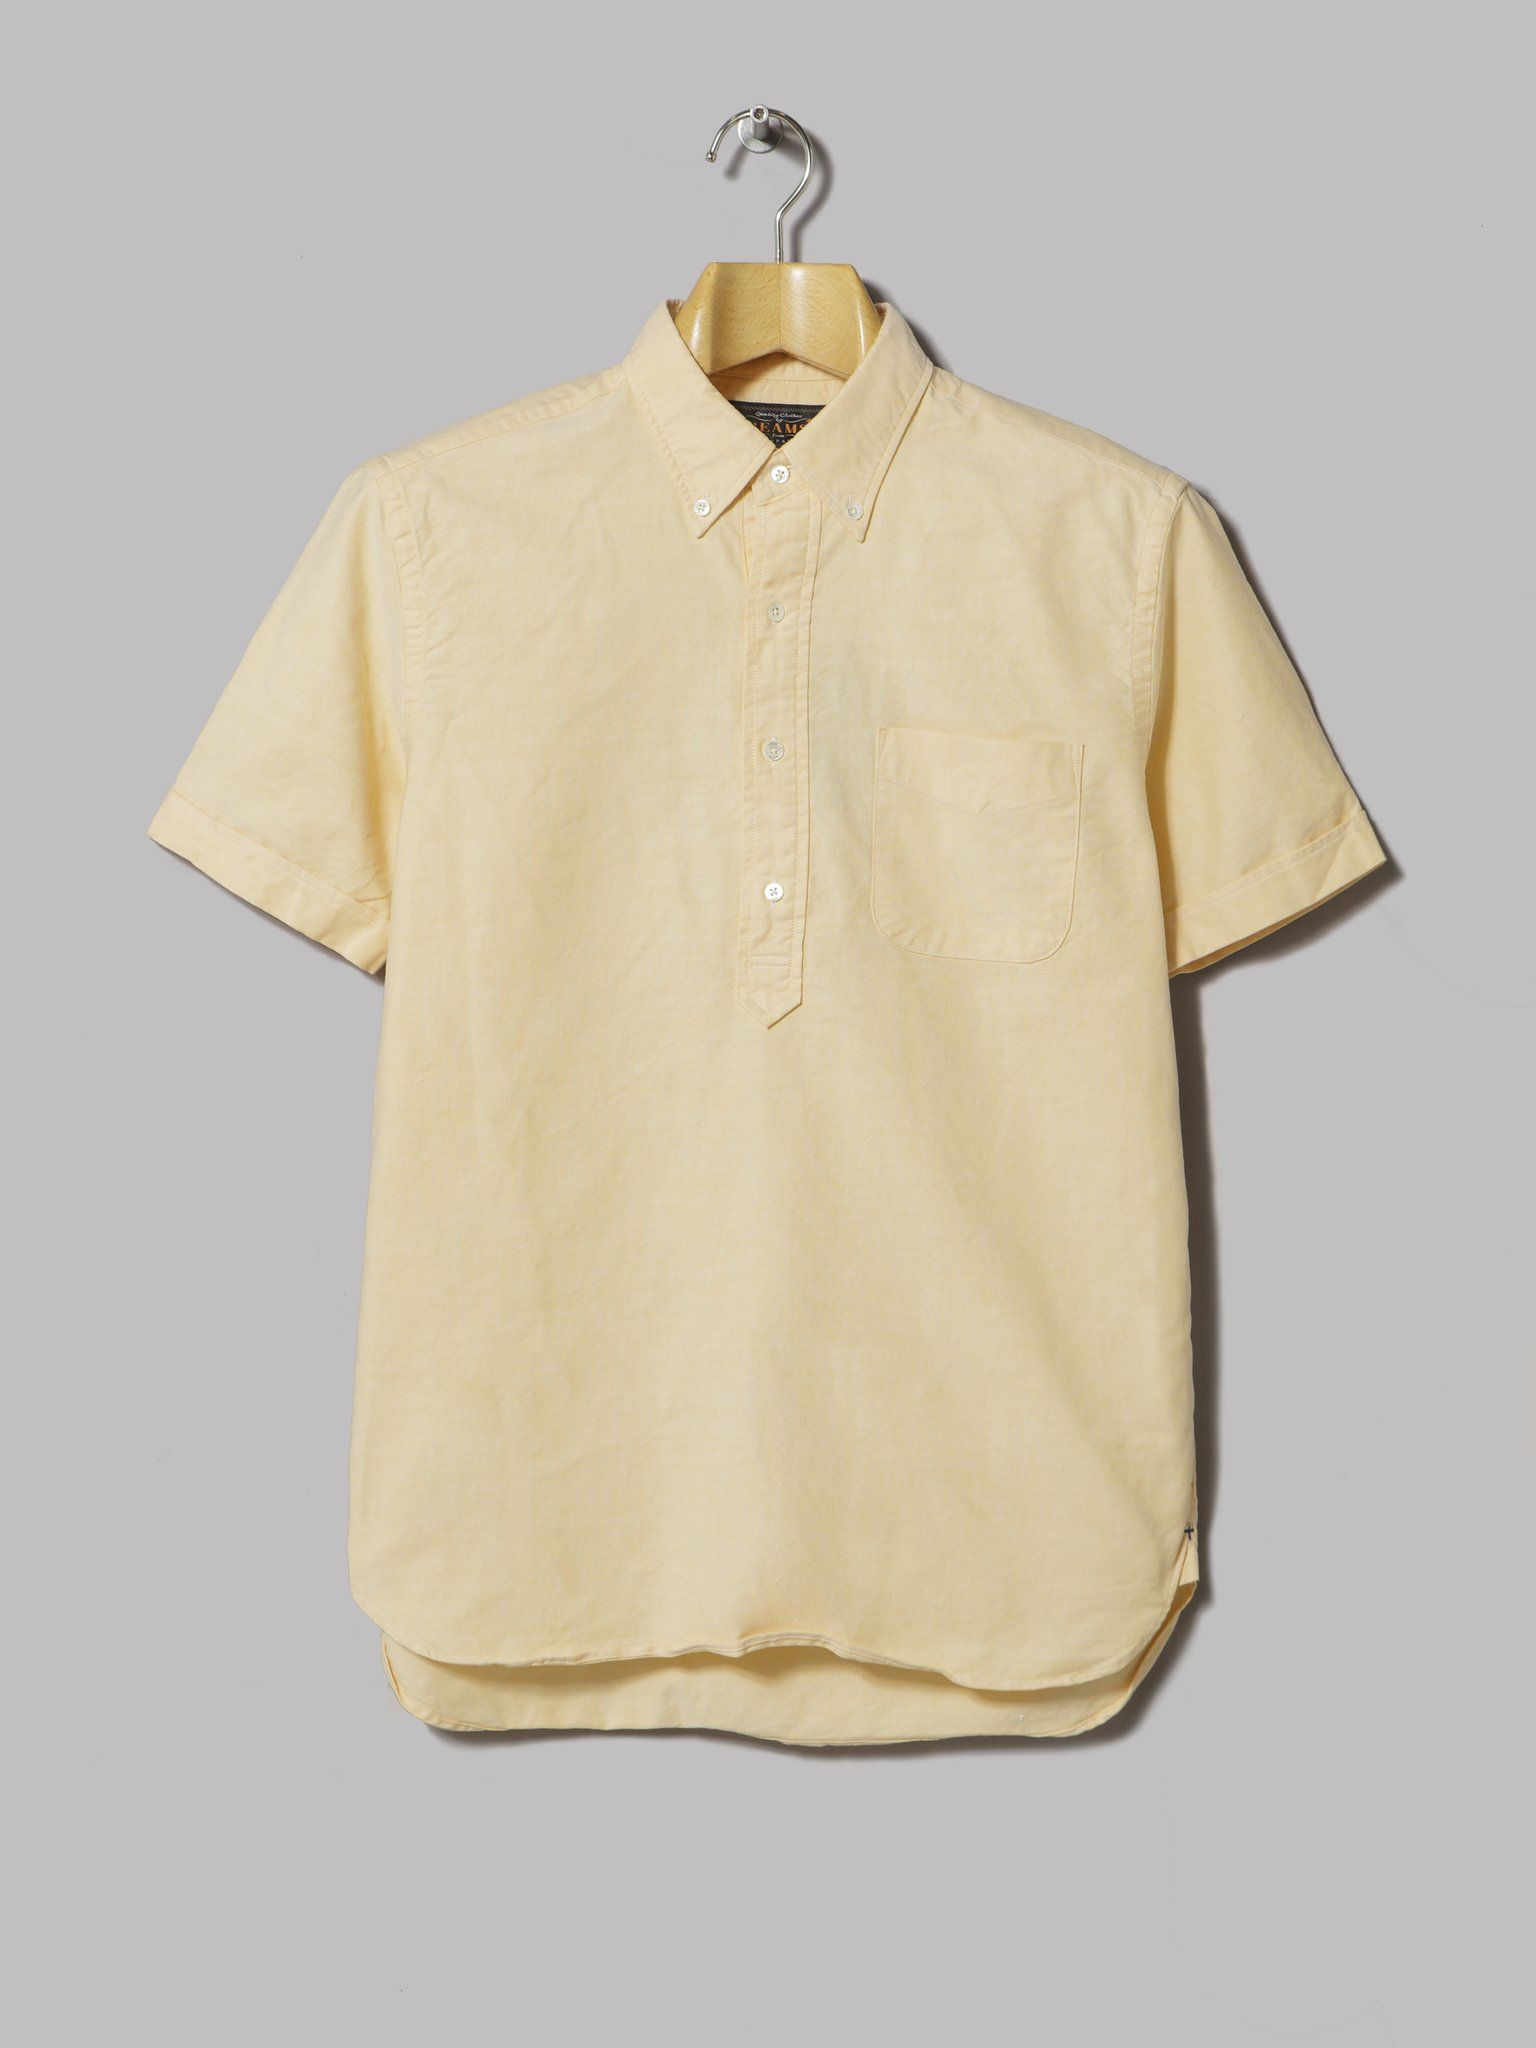 Beams Plus Pullover B D  Oxford Short Sleeved Shirt (Yellow